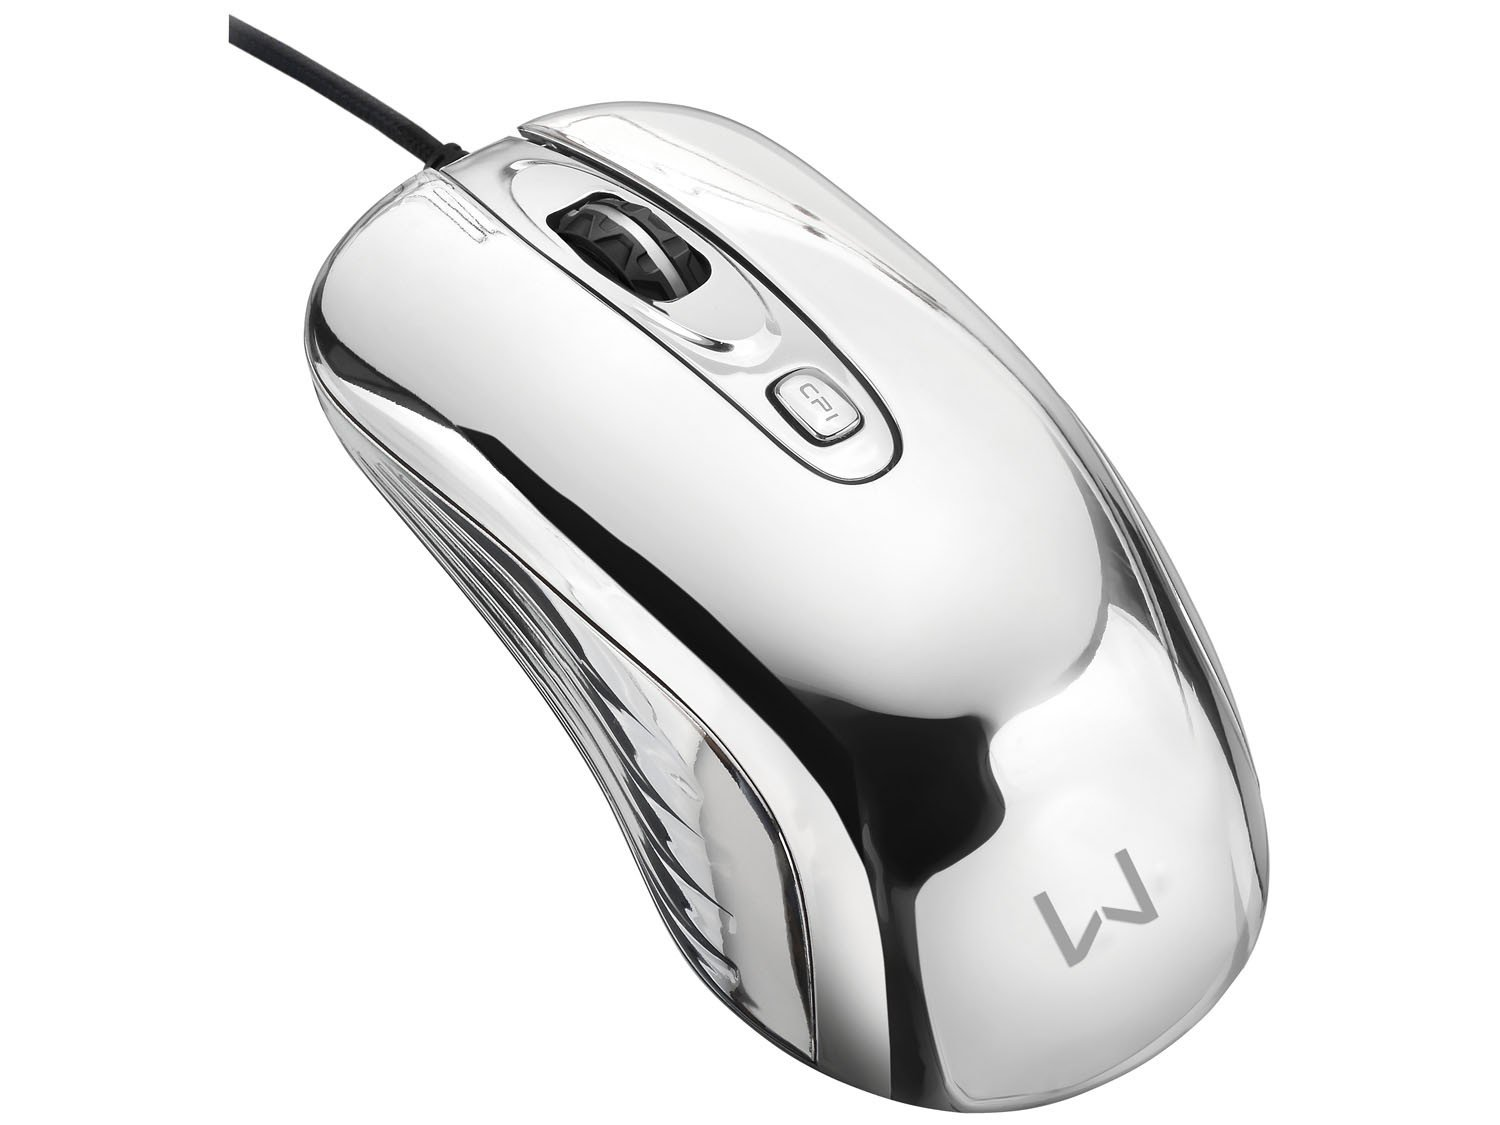 Foto 2 - Mouse Óptico 1600dpi USB - Multilaser Gamer Chrome Warrior M0228